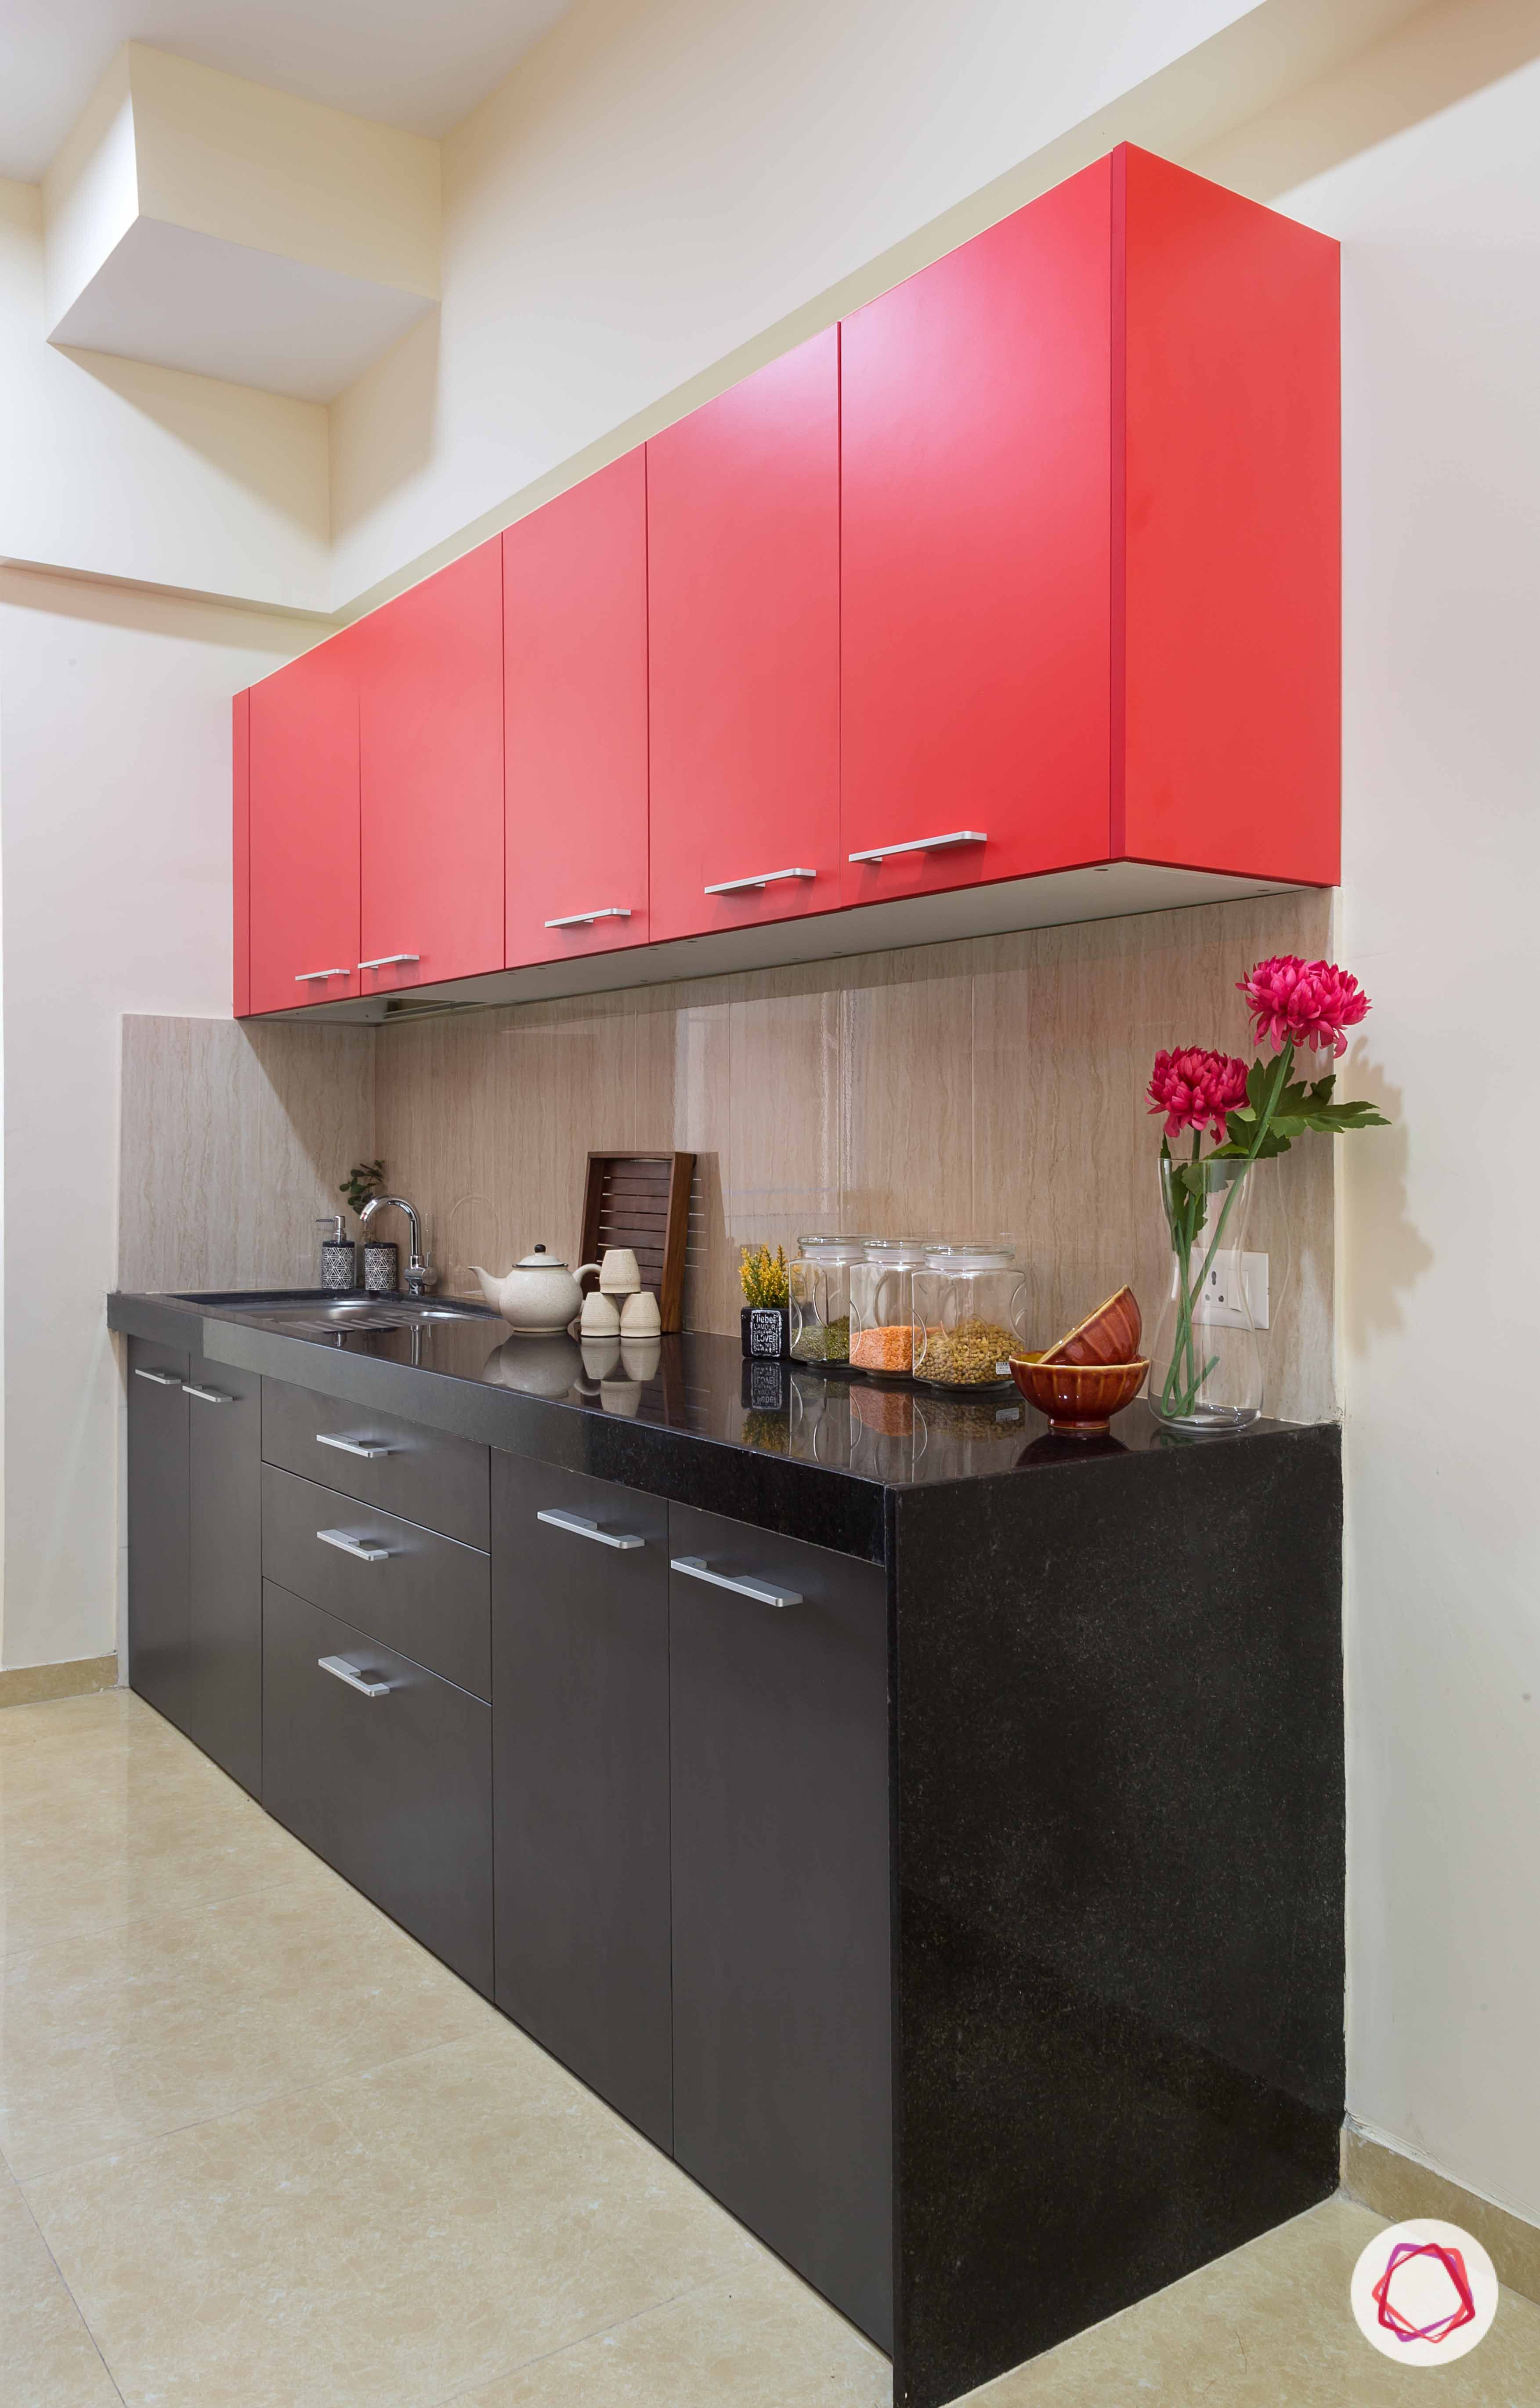 Modular Kitchen Design Courses In India Modular Kitchen In Pop Colors Black Red And A Beige